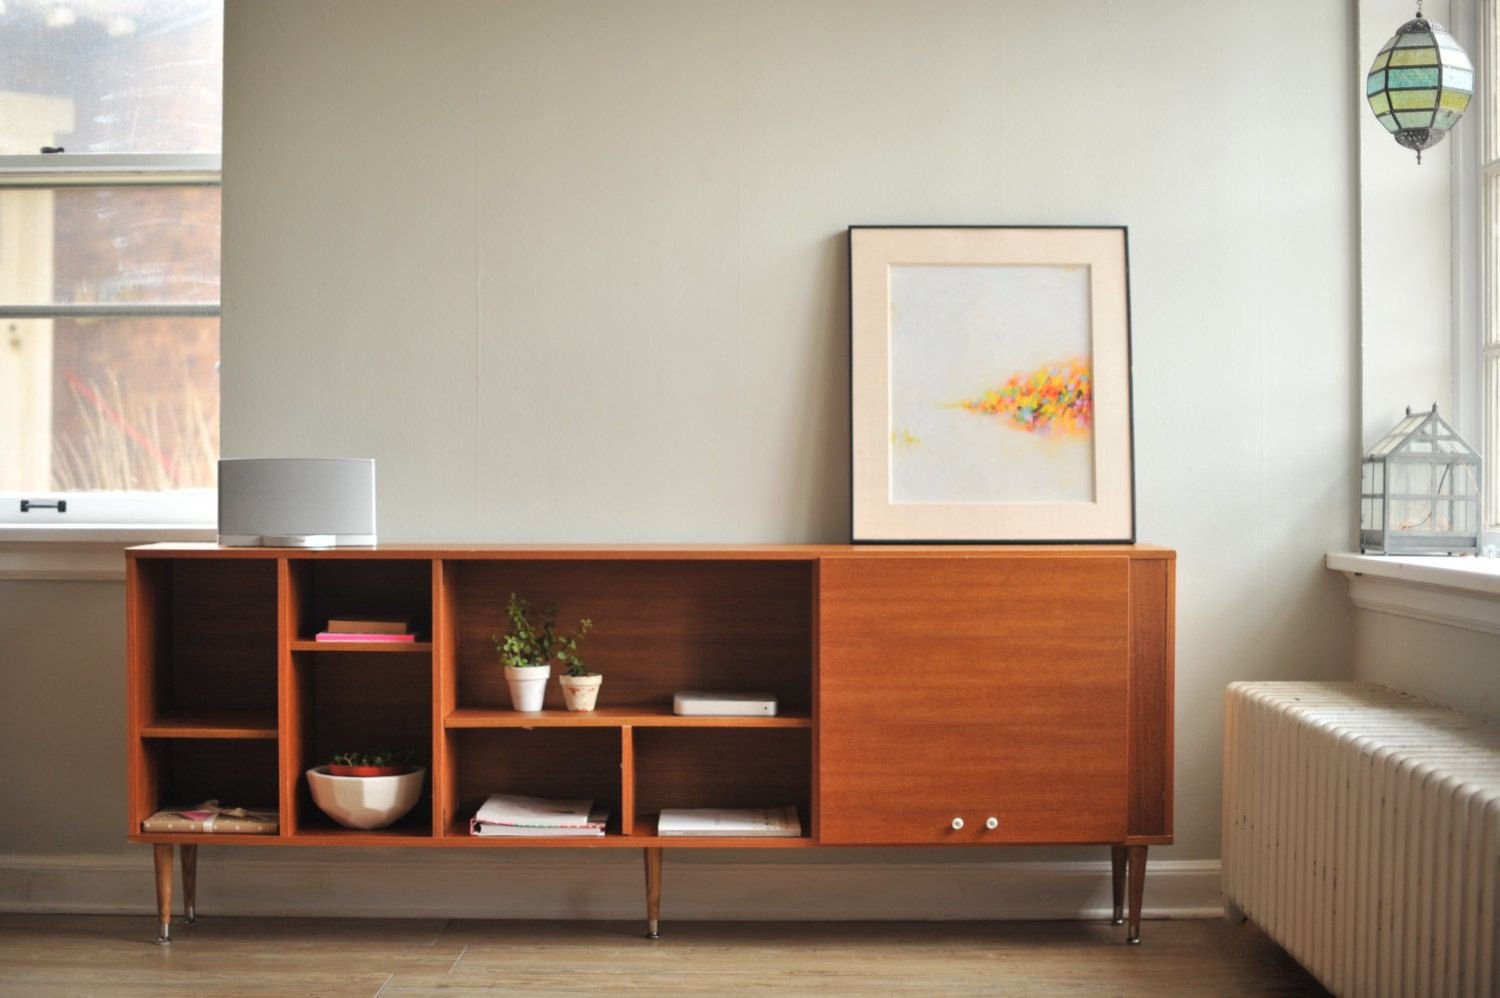 Pin By Top Productions On Penge Hopes Pinterest Credenza Living